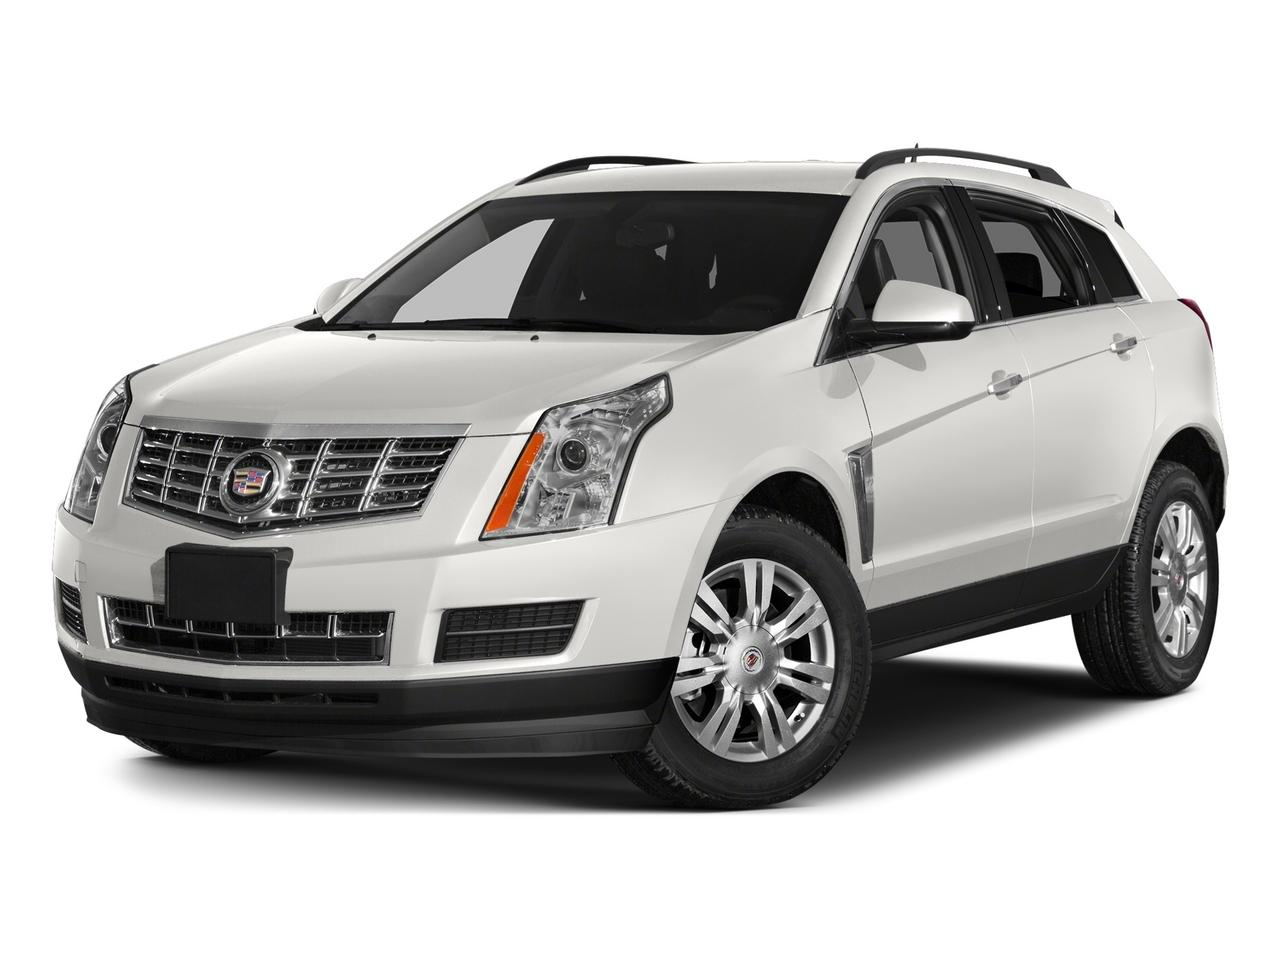 2015 Cadillac SRX Vehicle Photo in San Antonio, TX 78257